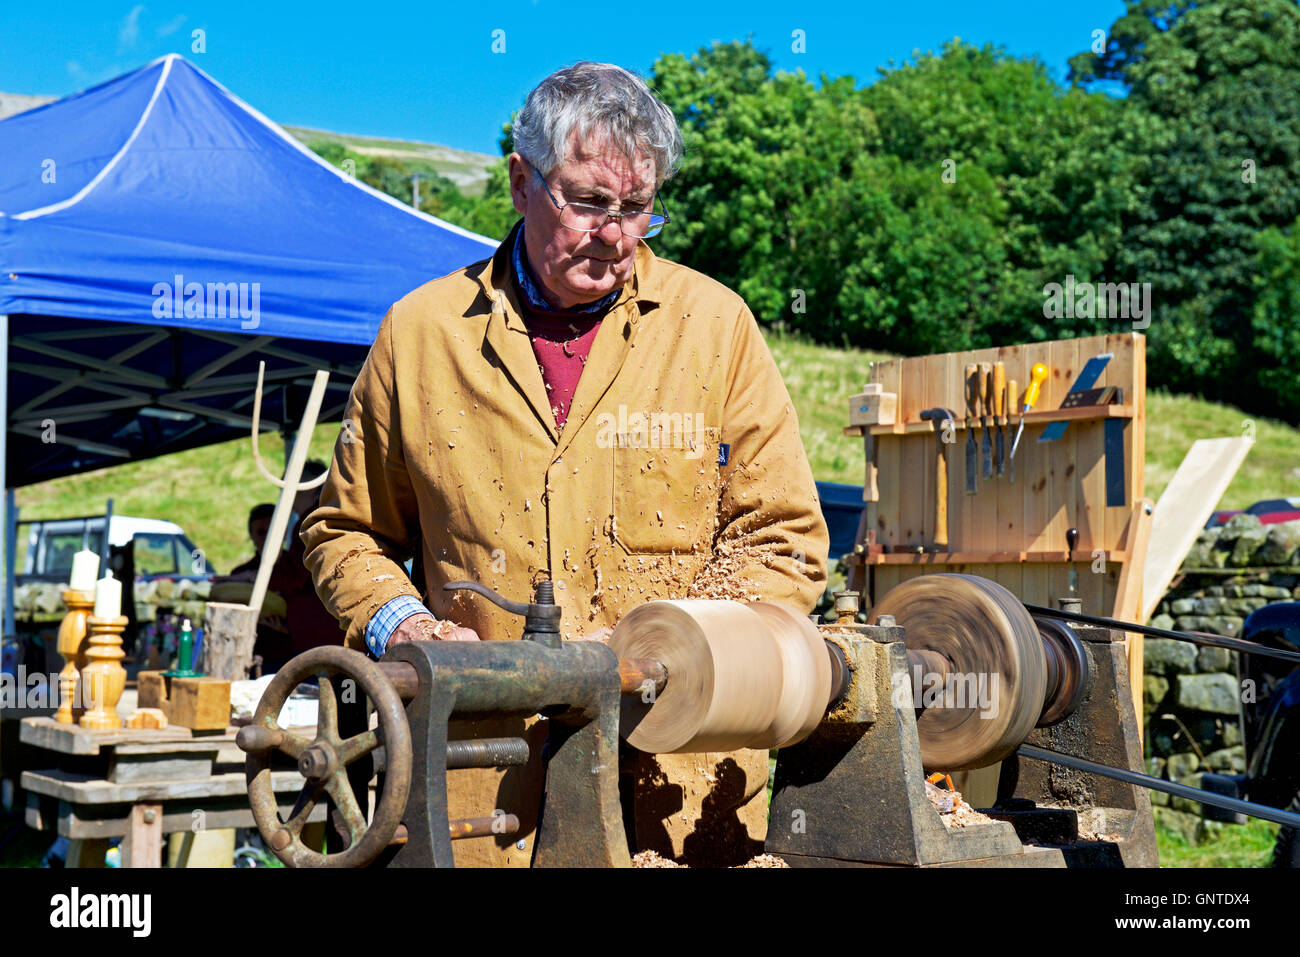 Man working piece of wood on lathe at Reeth Show, Swaledale, North Yorkshire, England UK - Stock Image